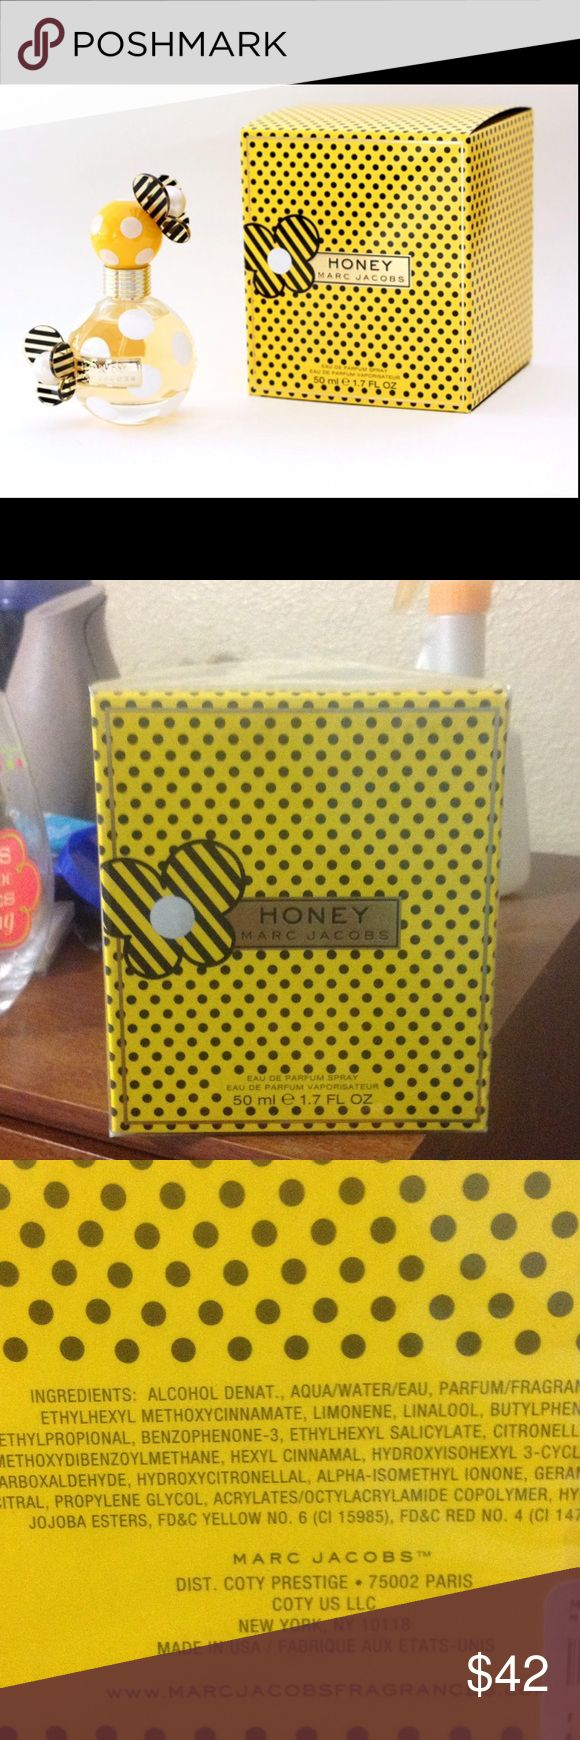 Marc Jacobs Honey Brand new (plastic still on) Marc Jacobs Honey parfum spray. Open to offers but please don't low ball Marc Jacobs Makeup